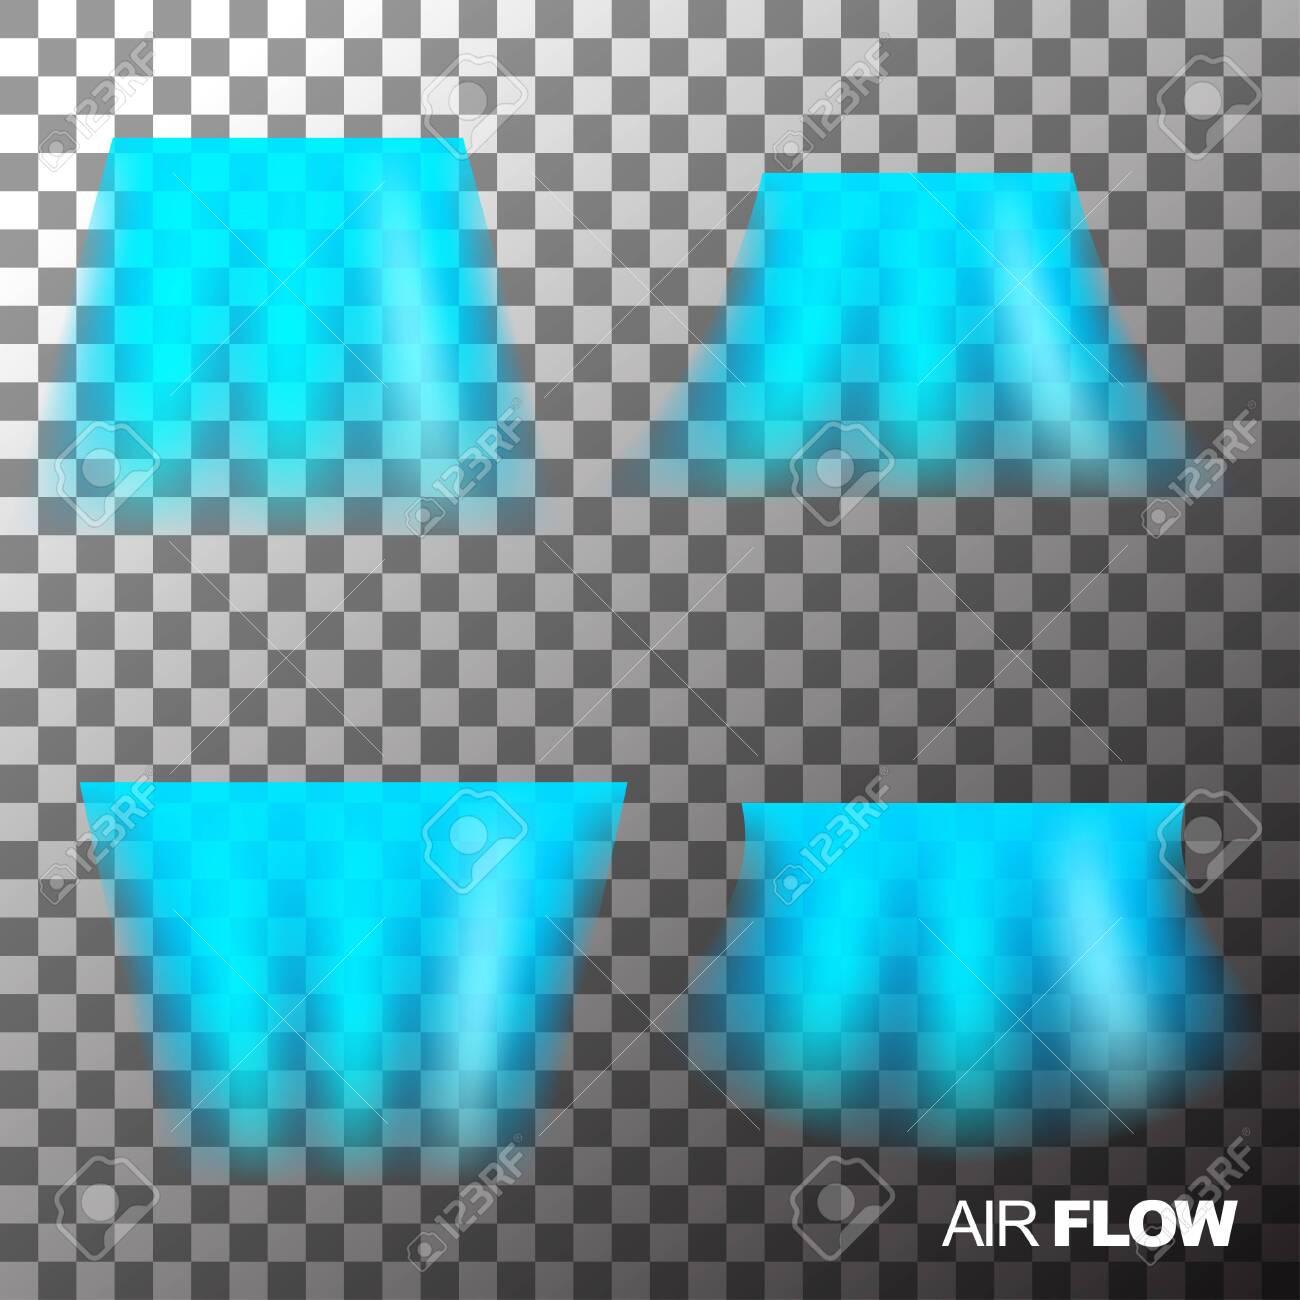 Air Flow Of Clean Or Cold Air From Conditioner. Isolated On Transparent..  Royalty Free Cliparts, Vectors, And Stock Illustration. Image 138145796.